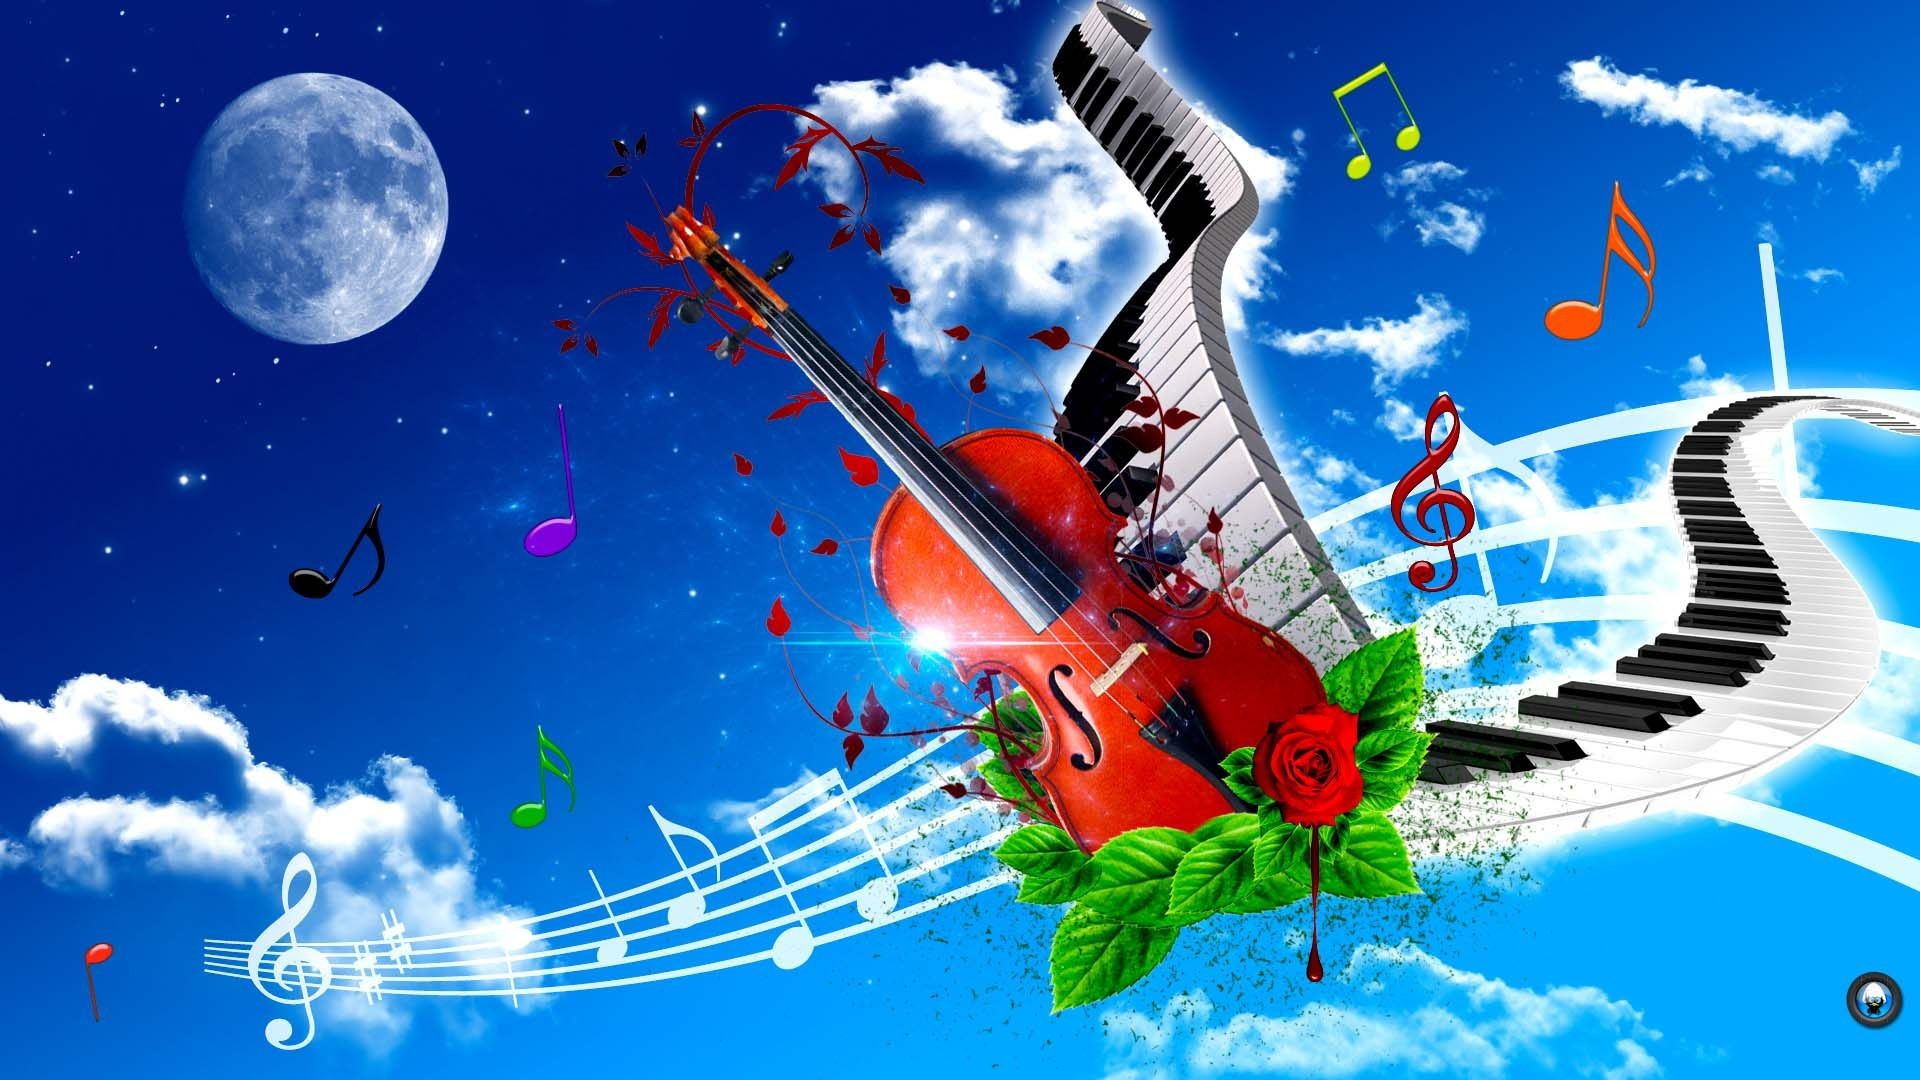 1920x1080 Latest Violin Hd New Wallpapers Free Download Latest New Wallpaper Download 1920x1080 Download Hd Wallpaper Wallpapertip